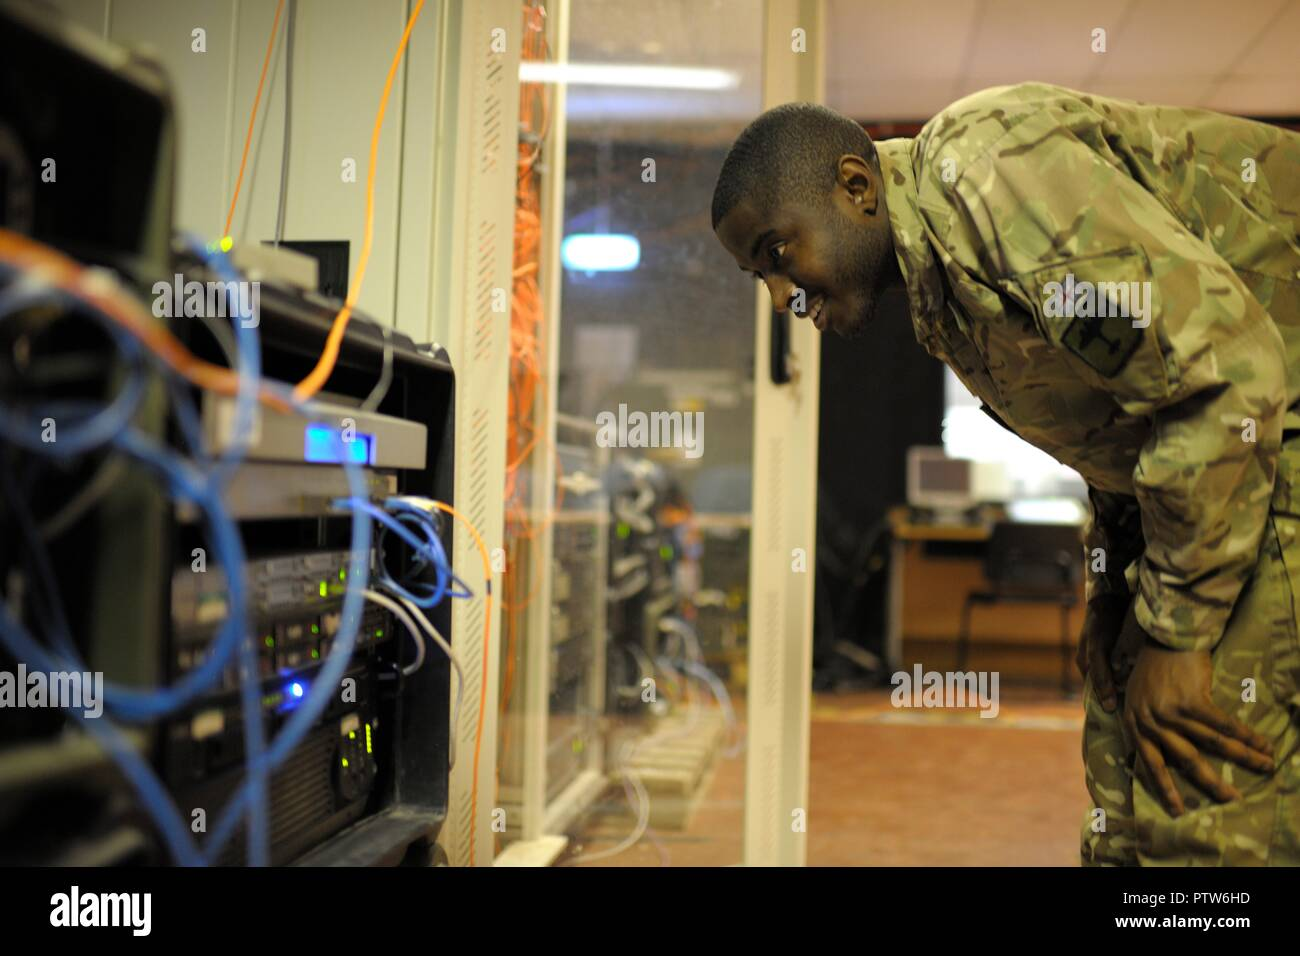 British Army soldier checks computer server equipment - Stock Image